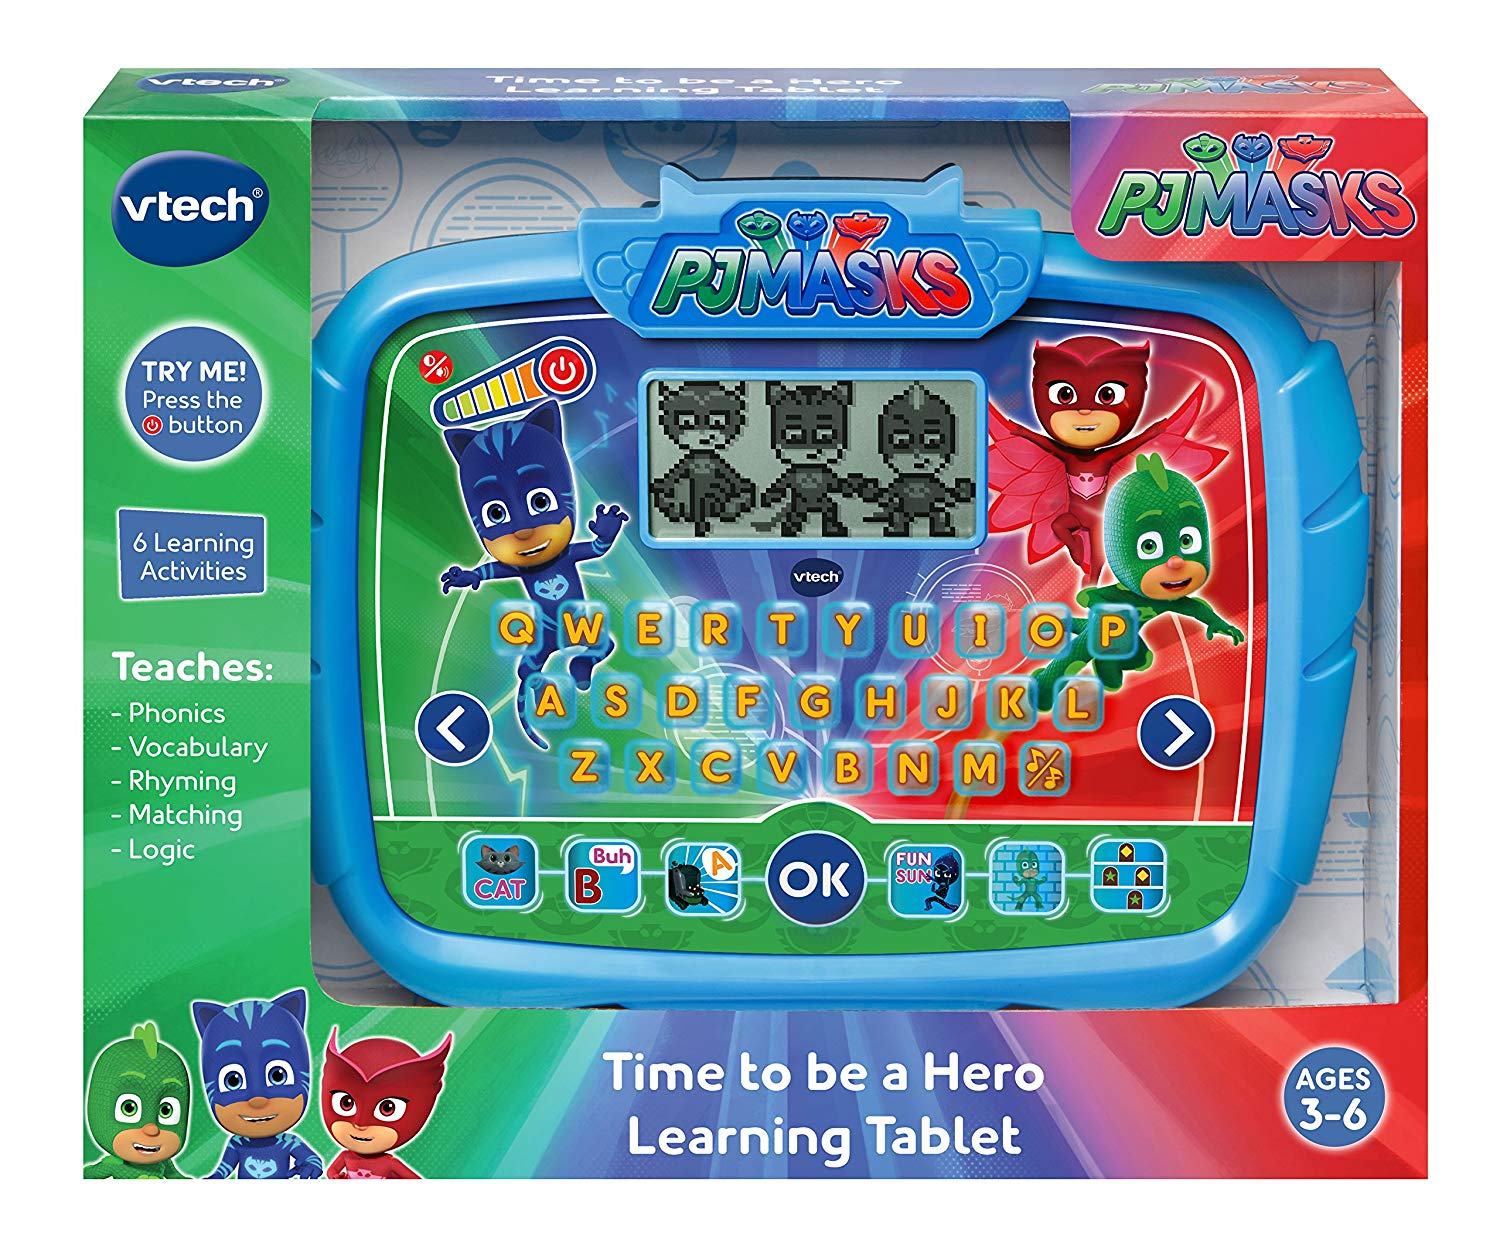 PJ Masks Time to Be a Hero Learning Tablet by VTech